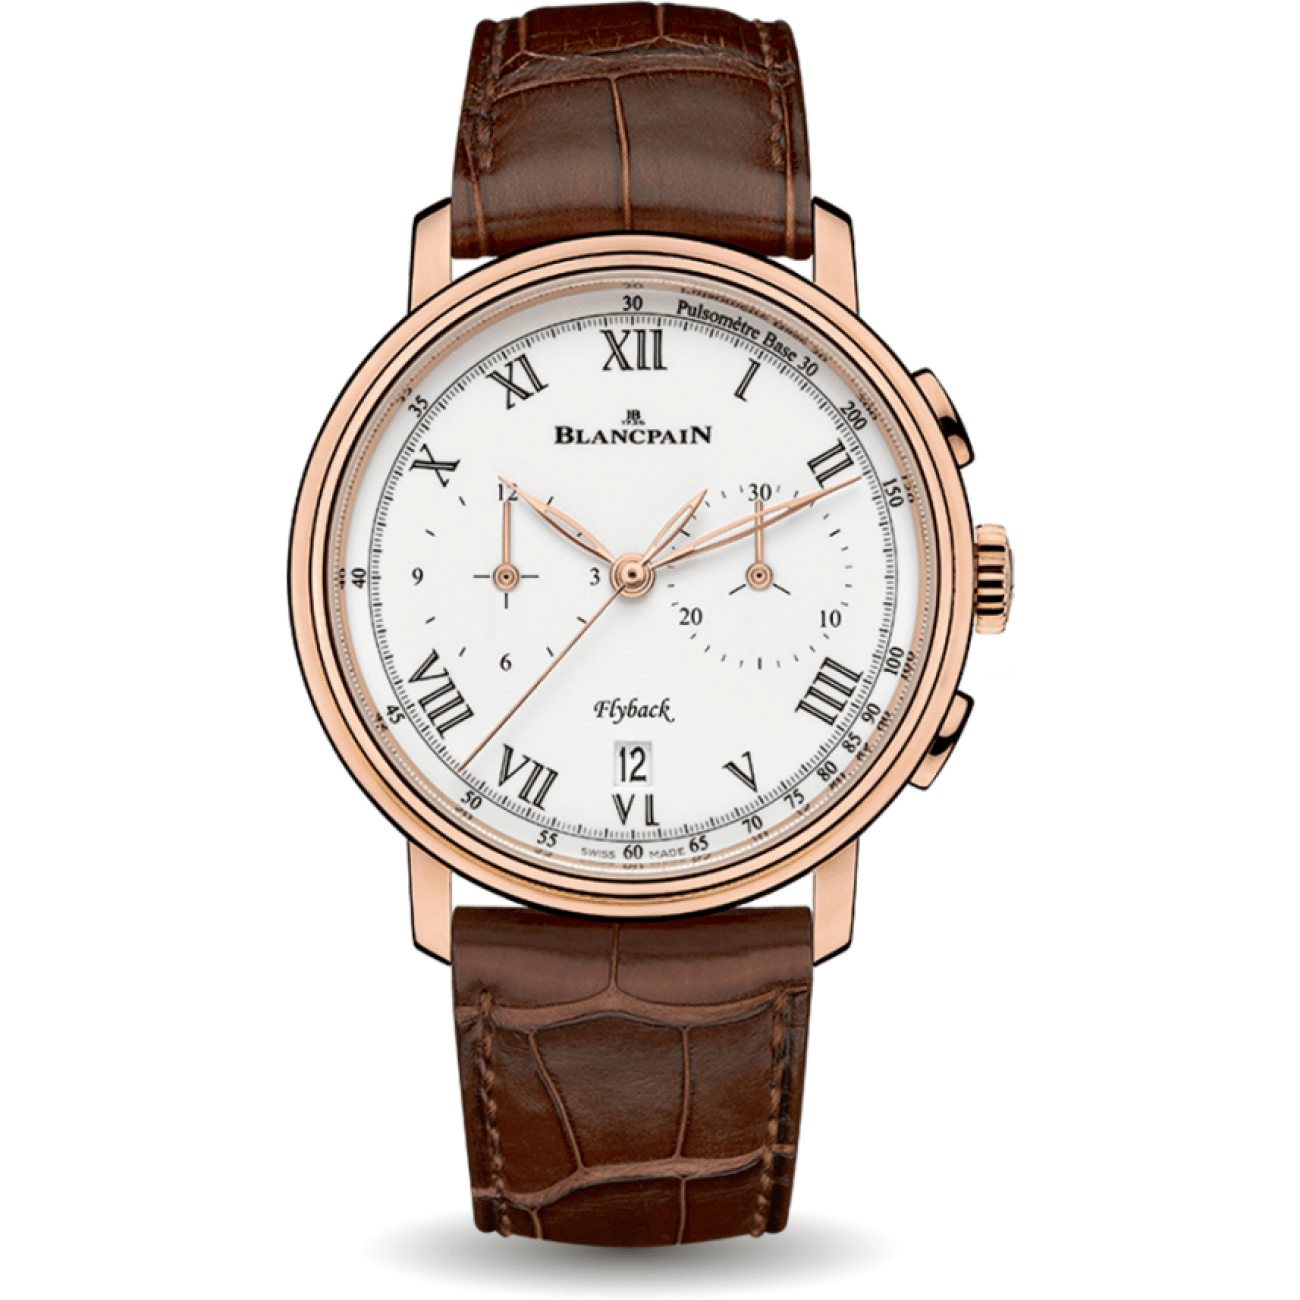 Blancpain Watches - Blancpain VILLERET PULSOMETER FLYBACK | Manfredi Jewels